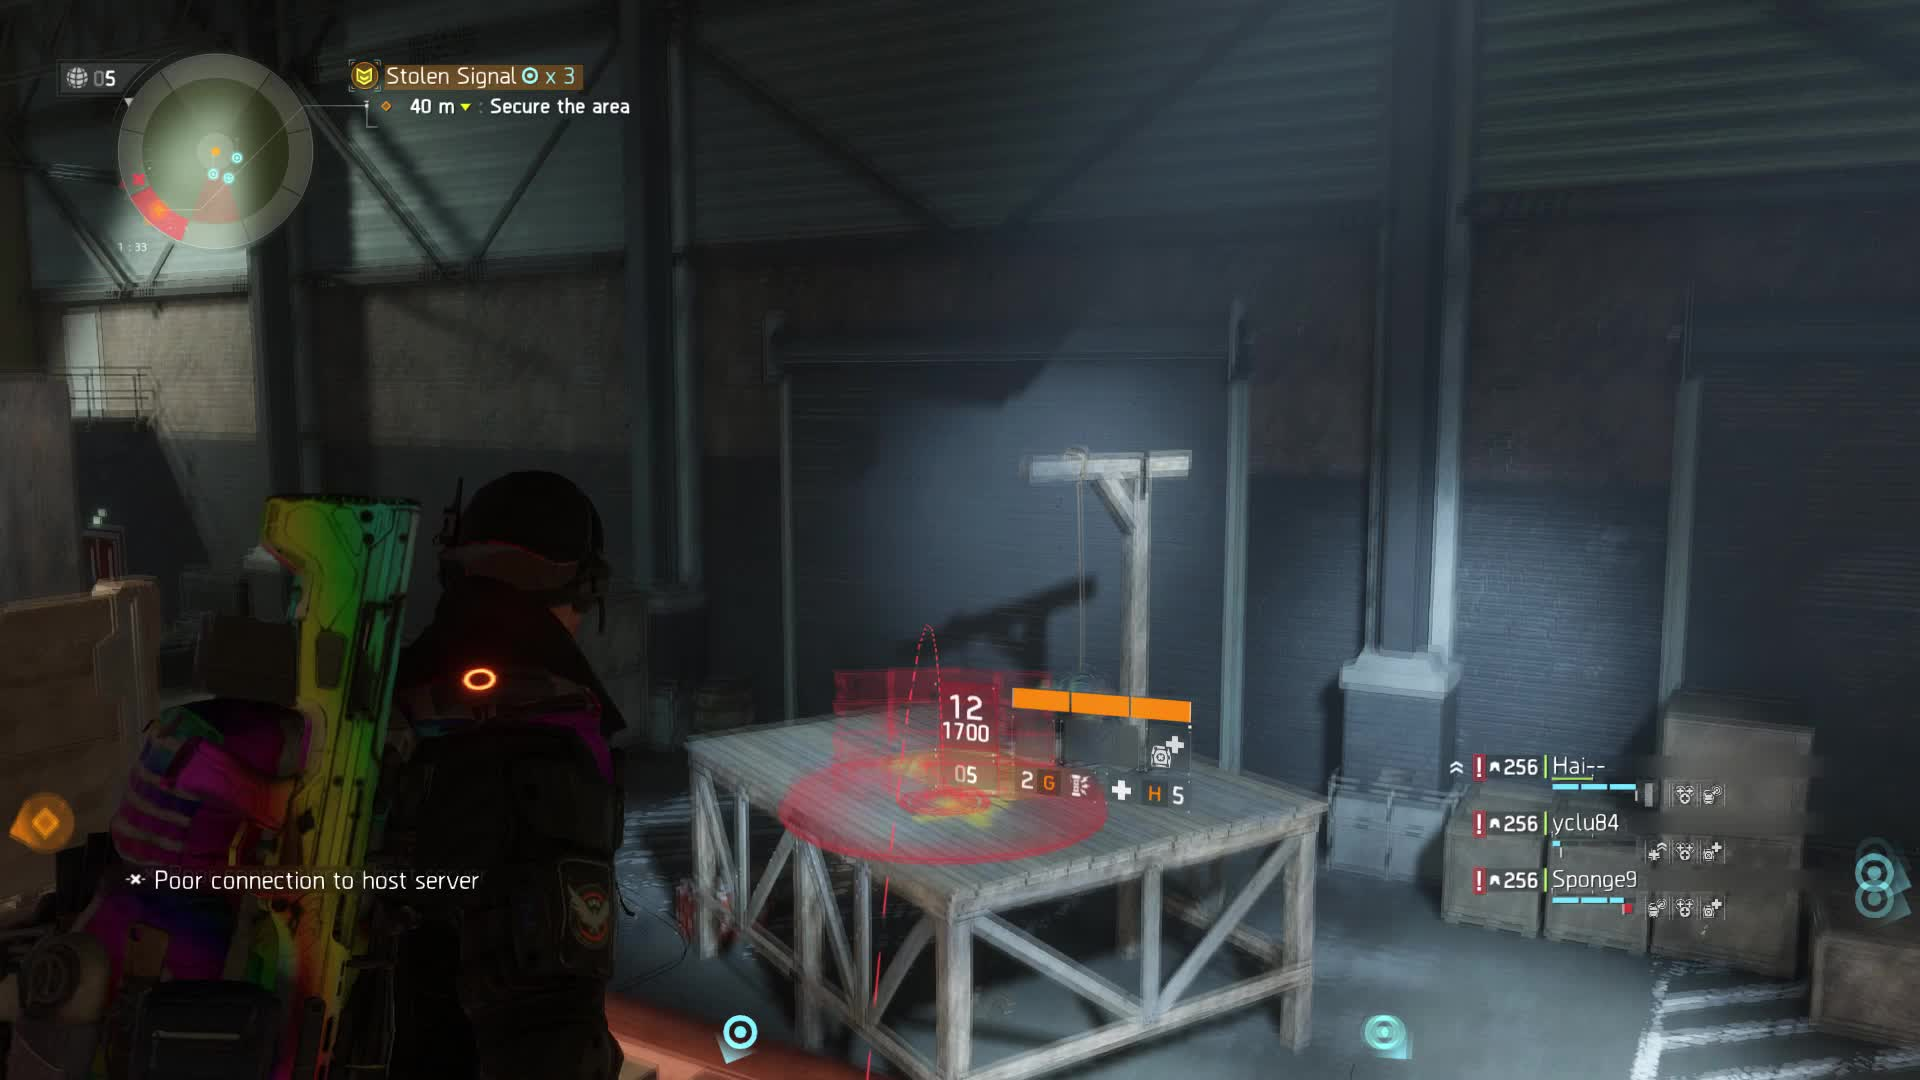 thedivision, Mobile Cover and Last Hostage on Stolen Signal GIFs